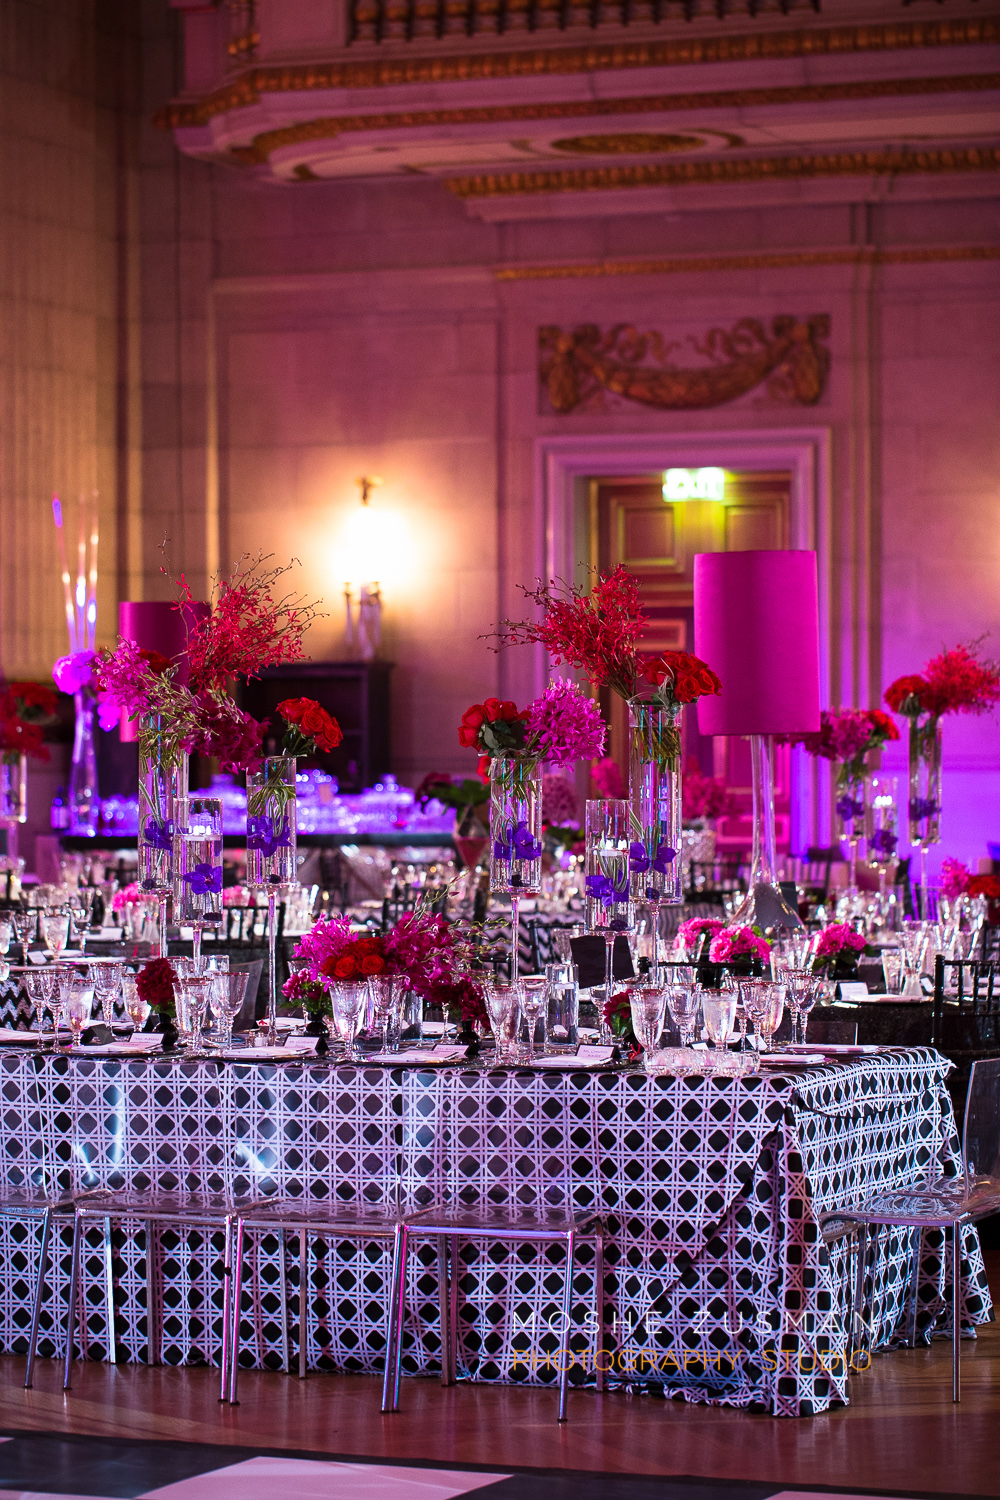 Bar-Mitzvah-photographer-moshe-zusman-RSVP-mellon-auditorium-09.jpg